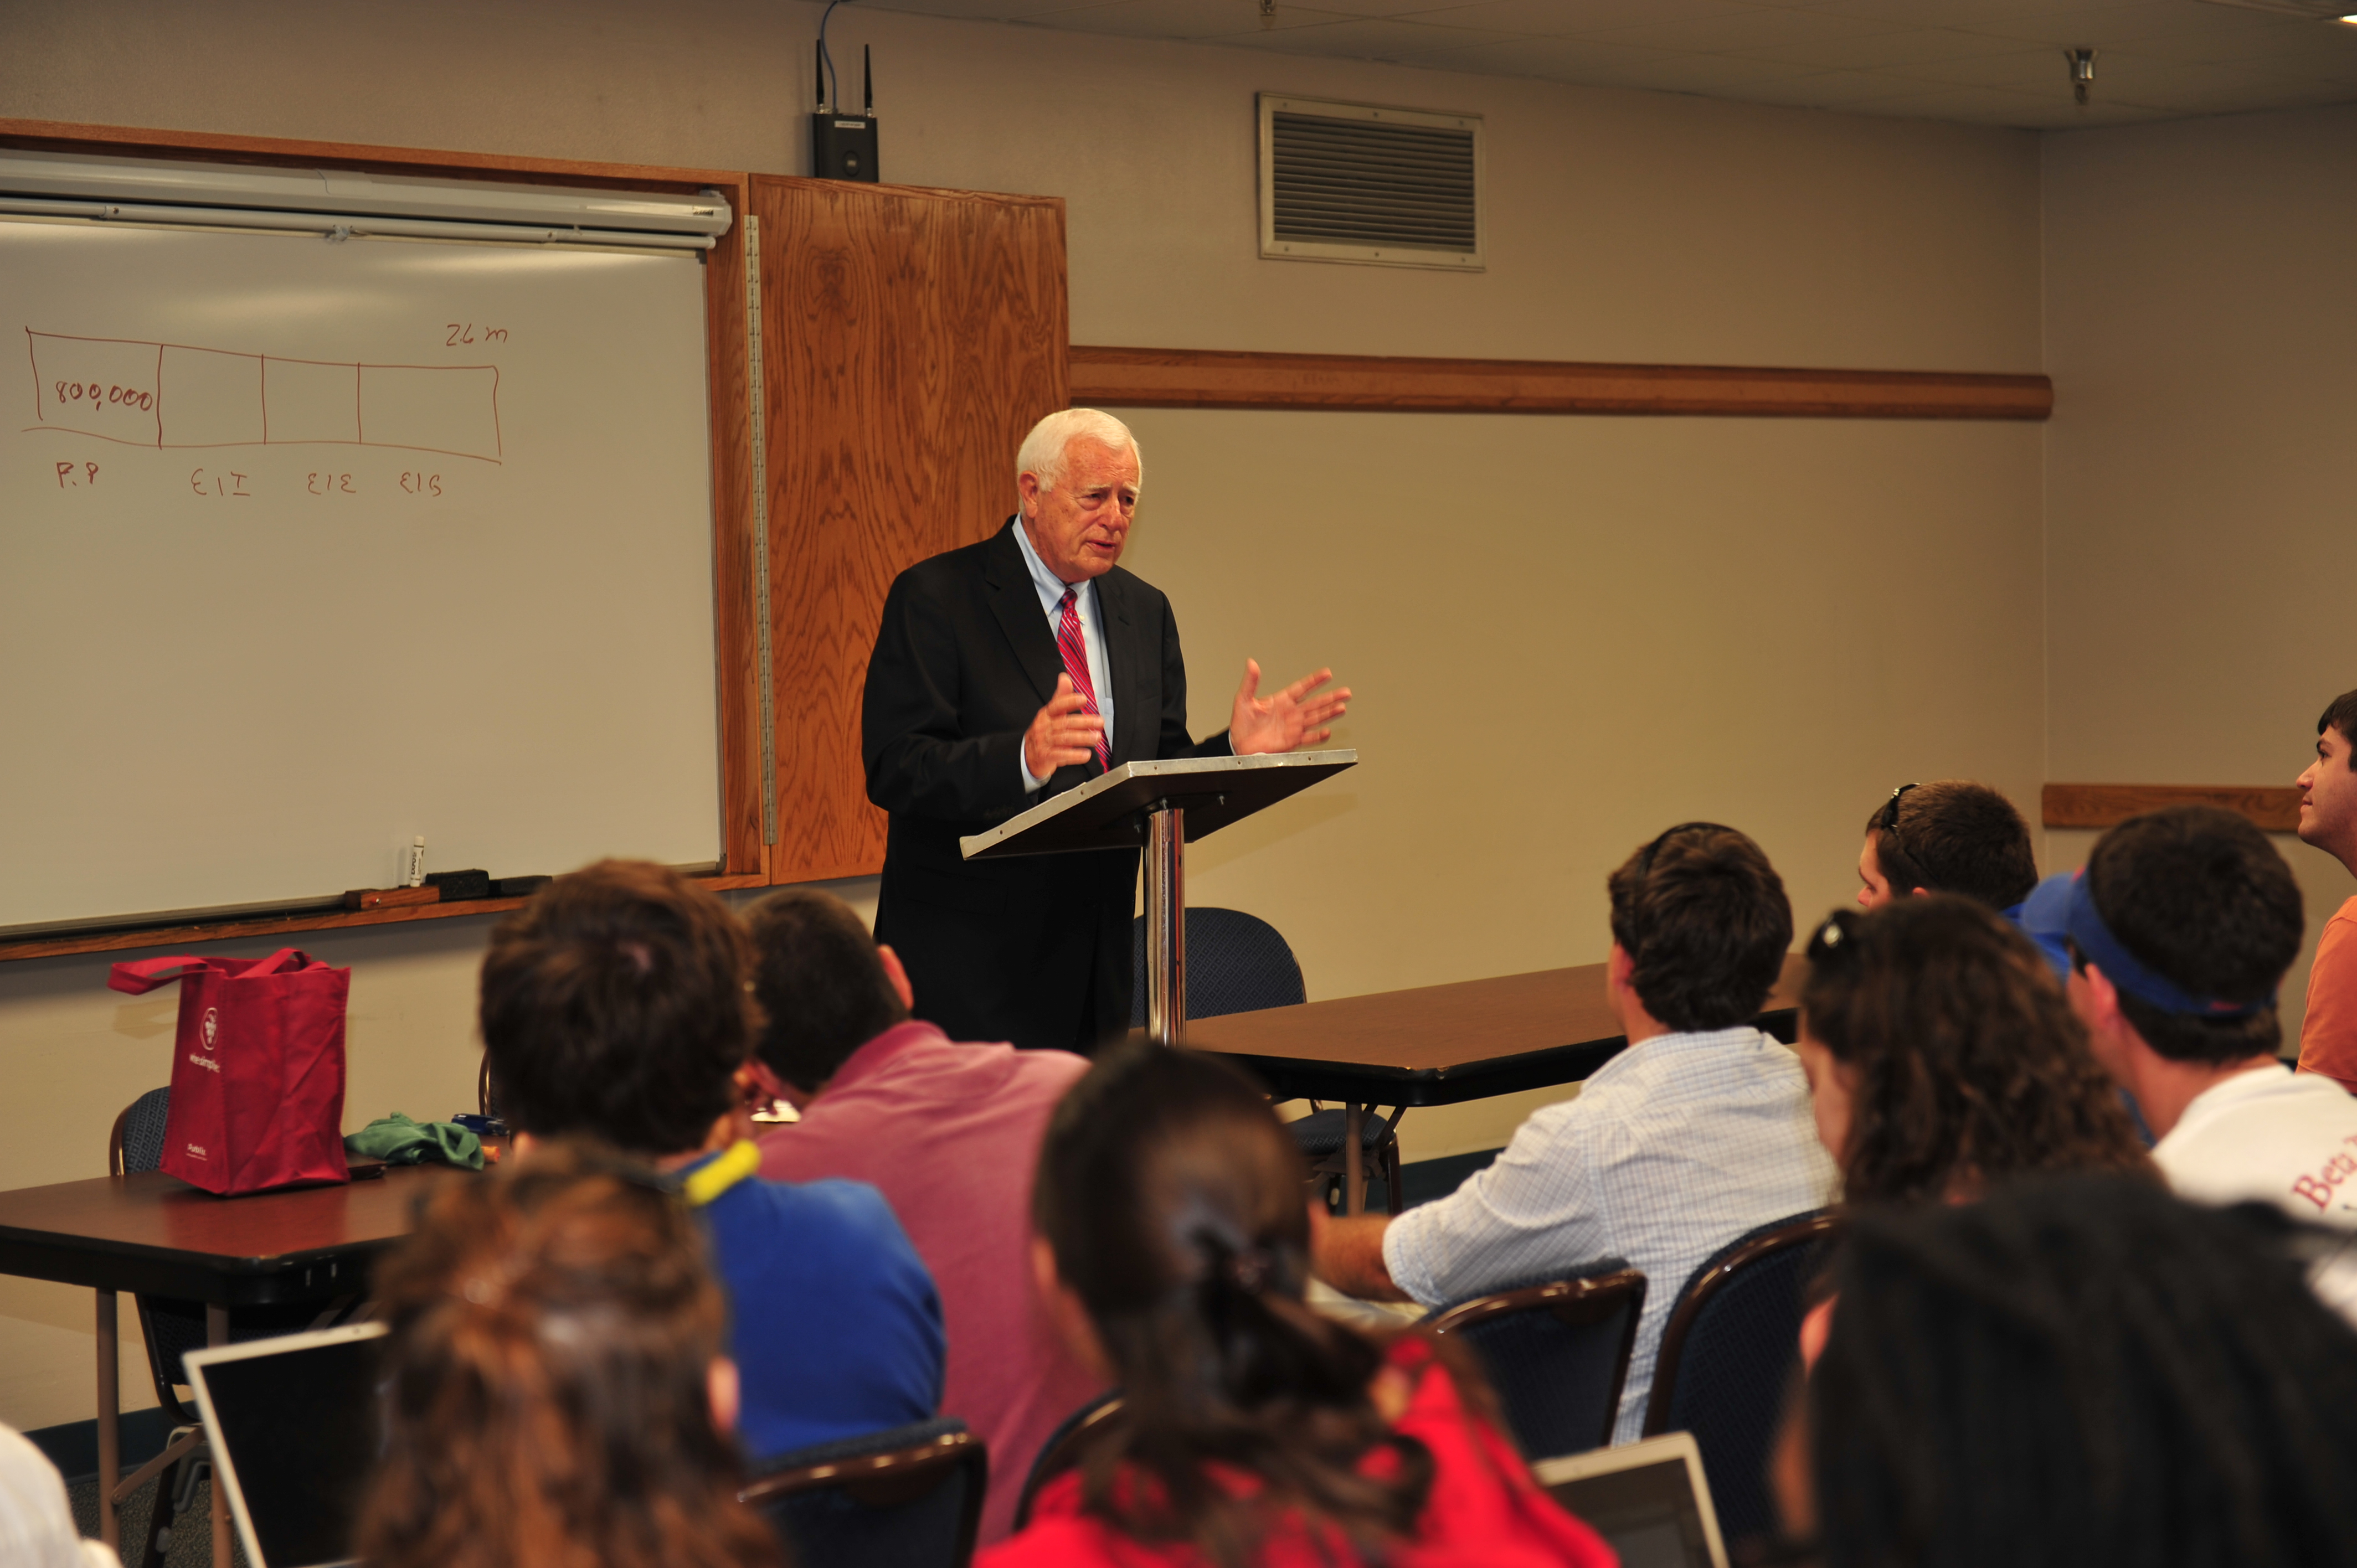 Bob Alligood delivers a lecture to students